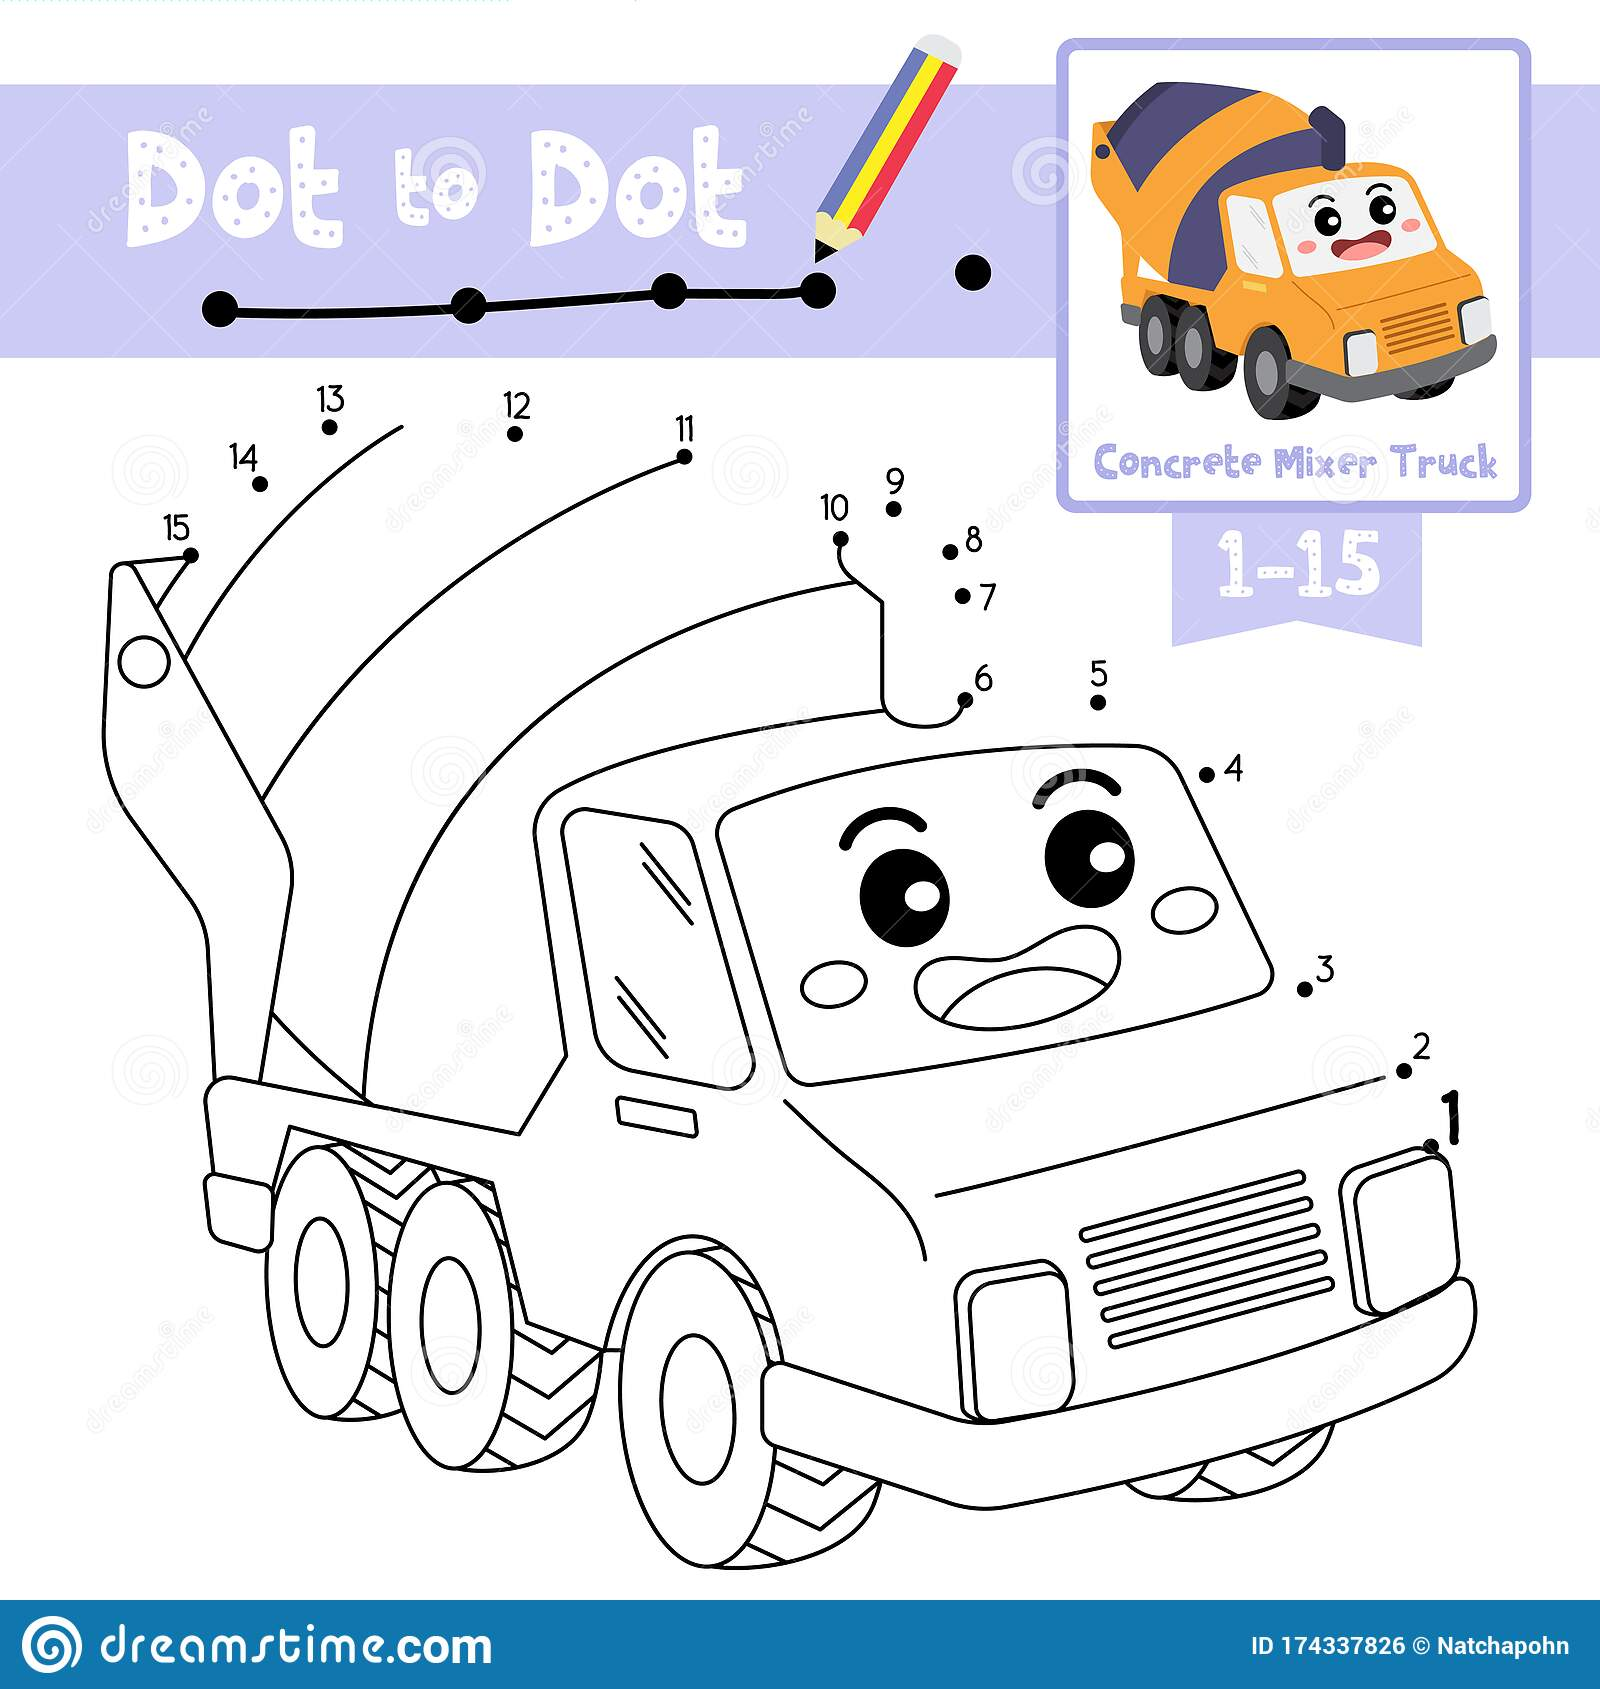 Dot To Dot Educational Game And Coloring Book Concrete